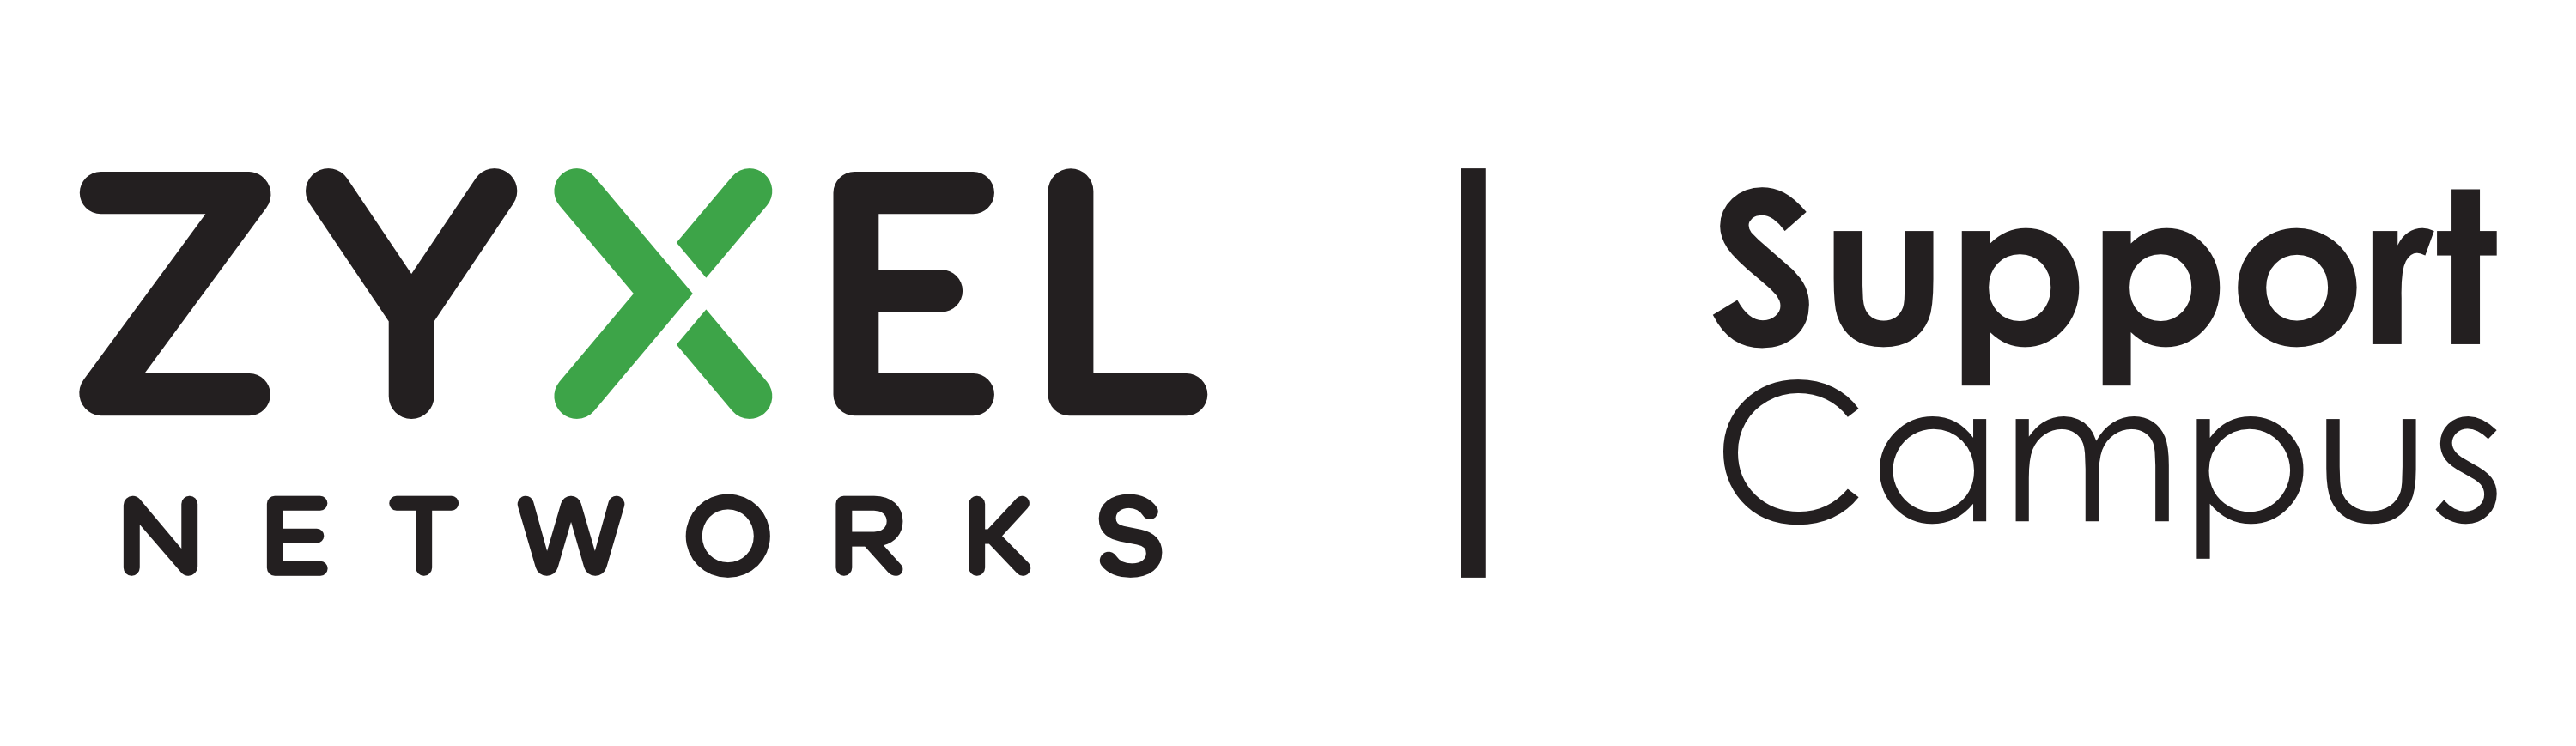 Zyxel_NETWORKS ___ Support_Campus_Logo__2_.png